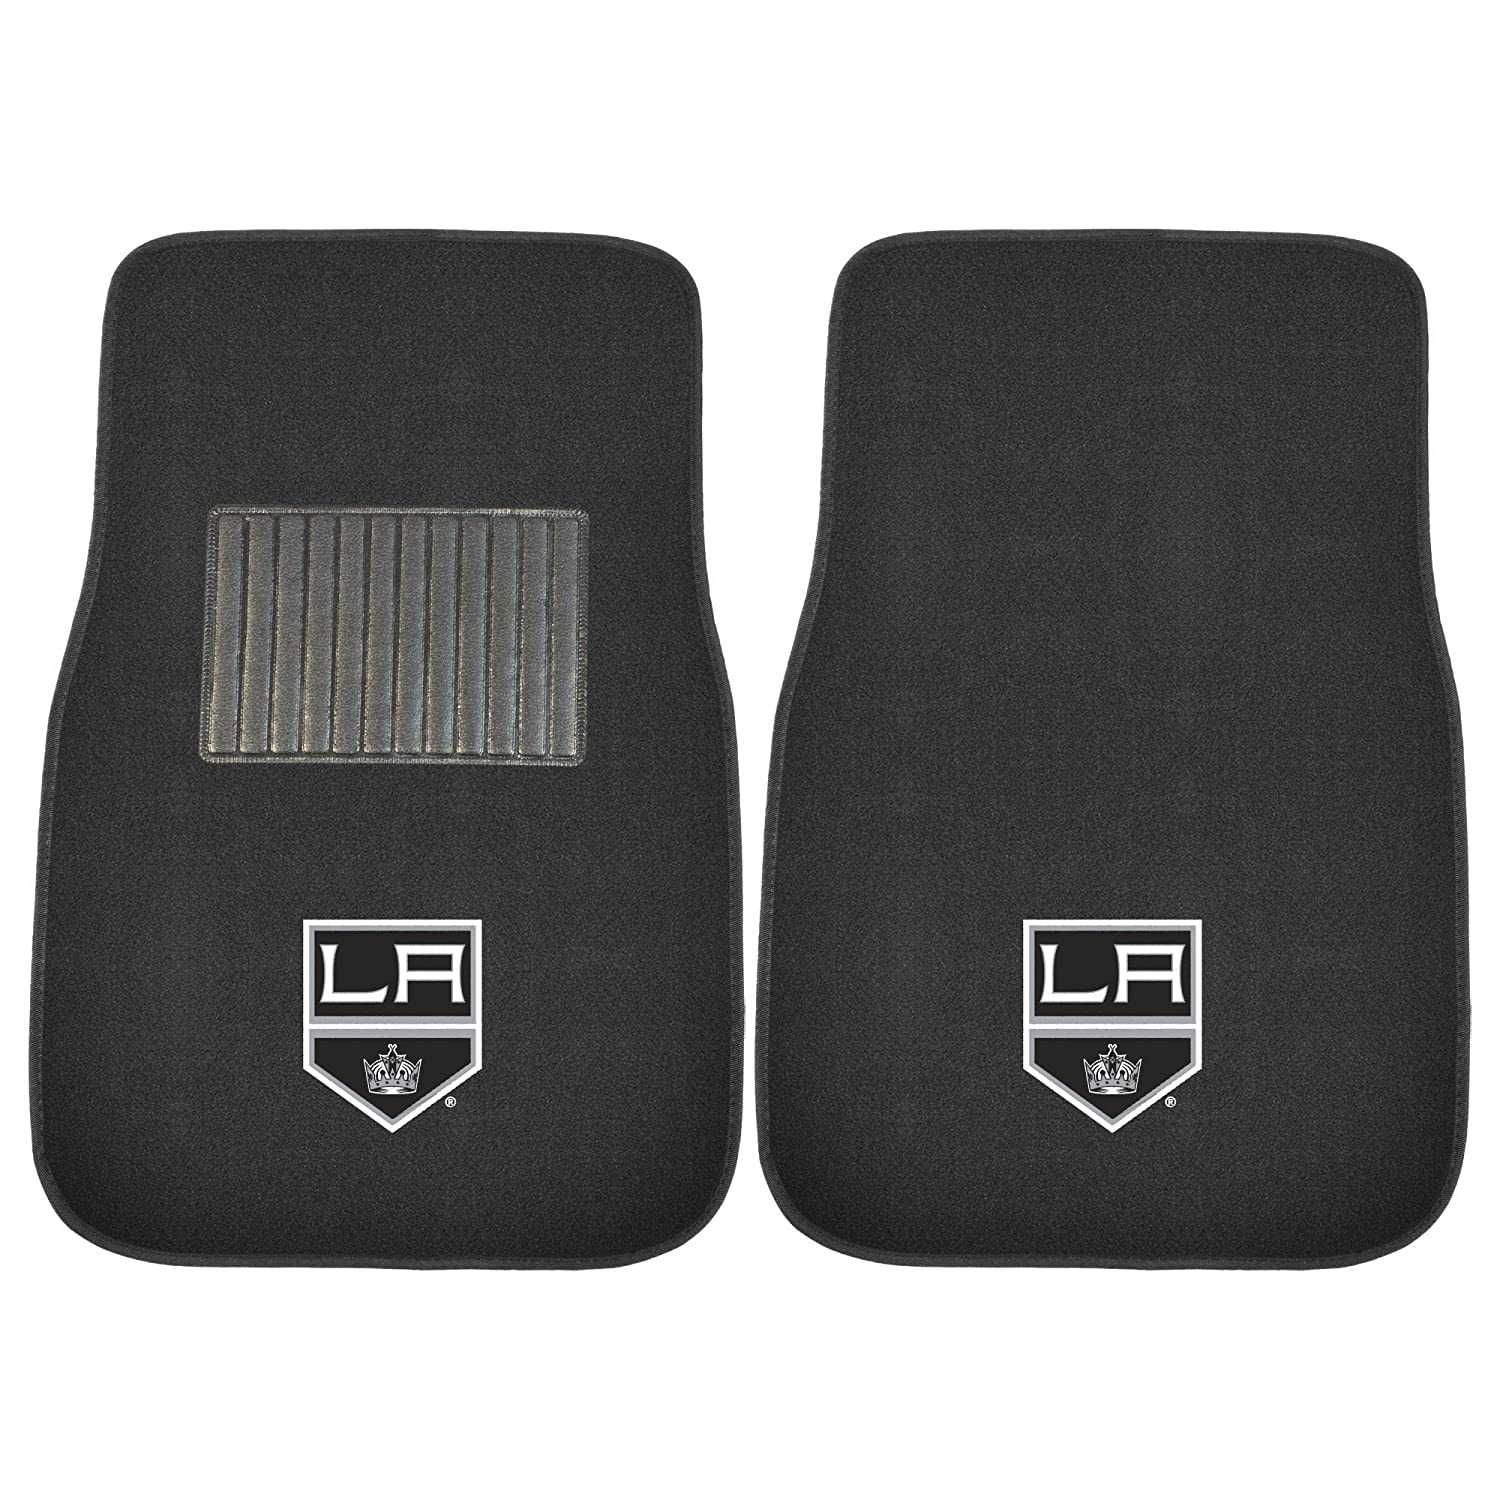 FANMATS 17166 NHL Los Angeles Kings 2-Piece Embroidered Car Mat Set